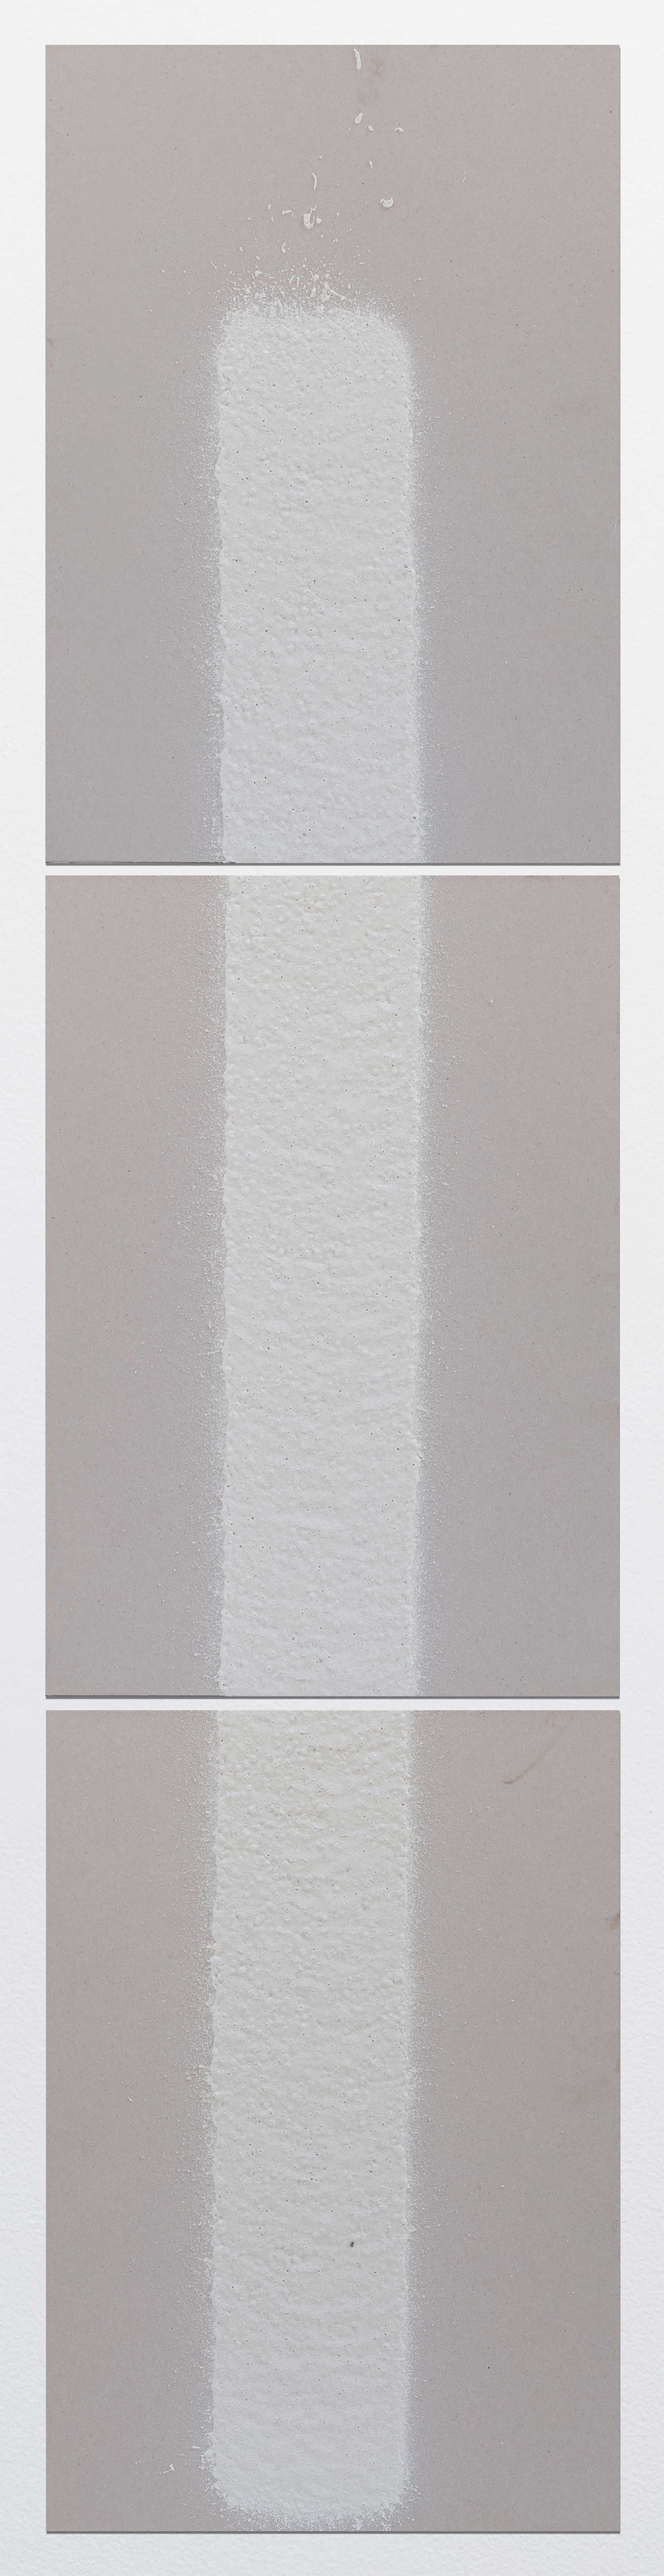 100mm (W), 1.2mm (T), White, Parking envelope line (620), 1000mm (L), Al Barsha 1, St 25b,  2017  Set of 3 works Thermoplastic paint and reflective glass particles on grey boards 50 x 35 cm each